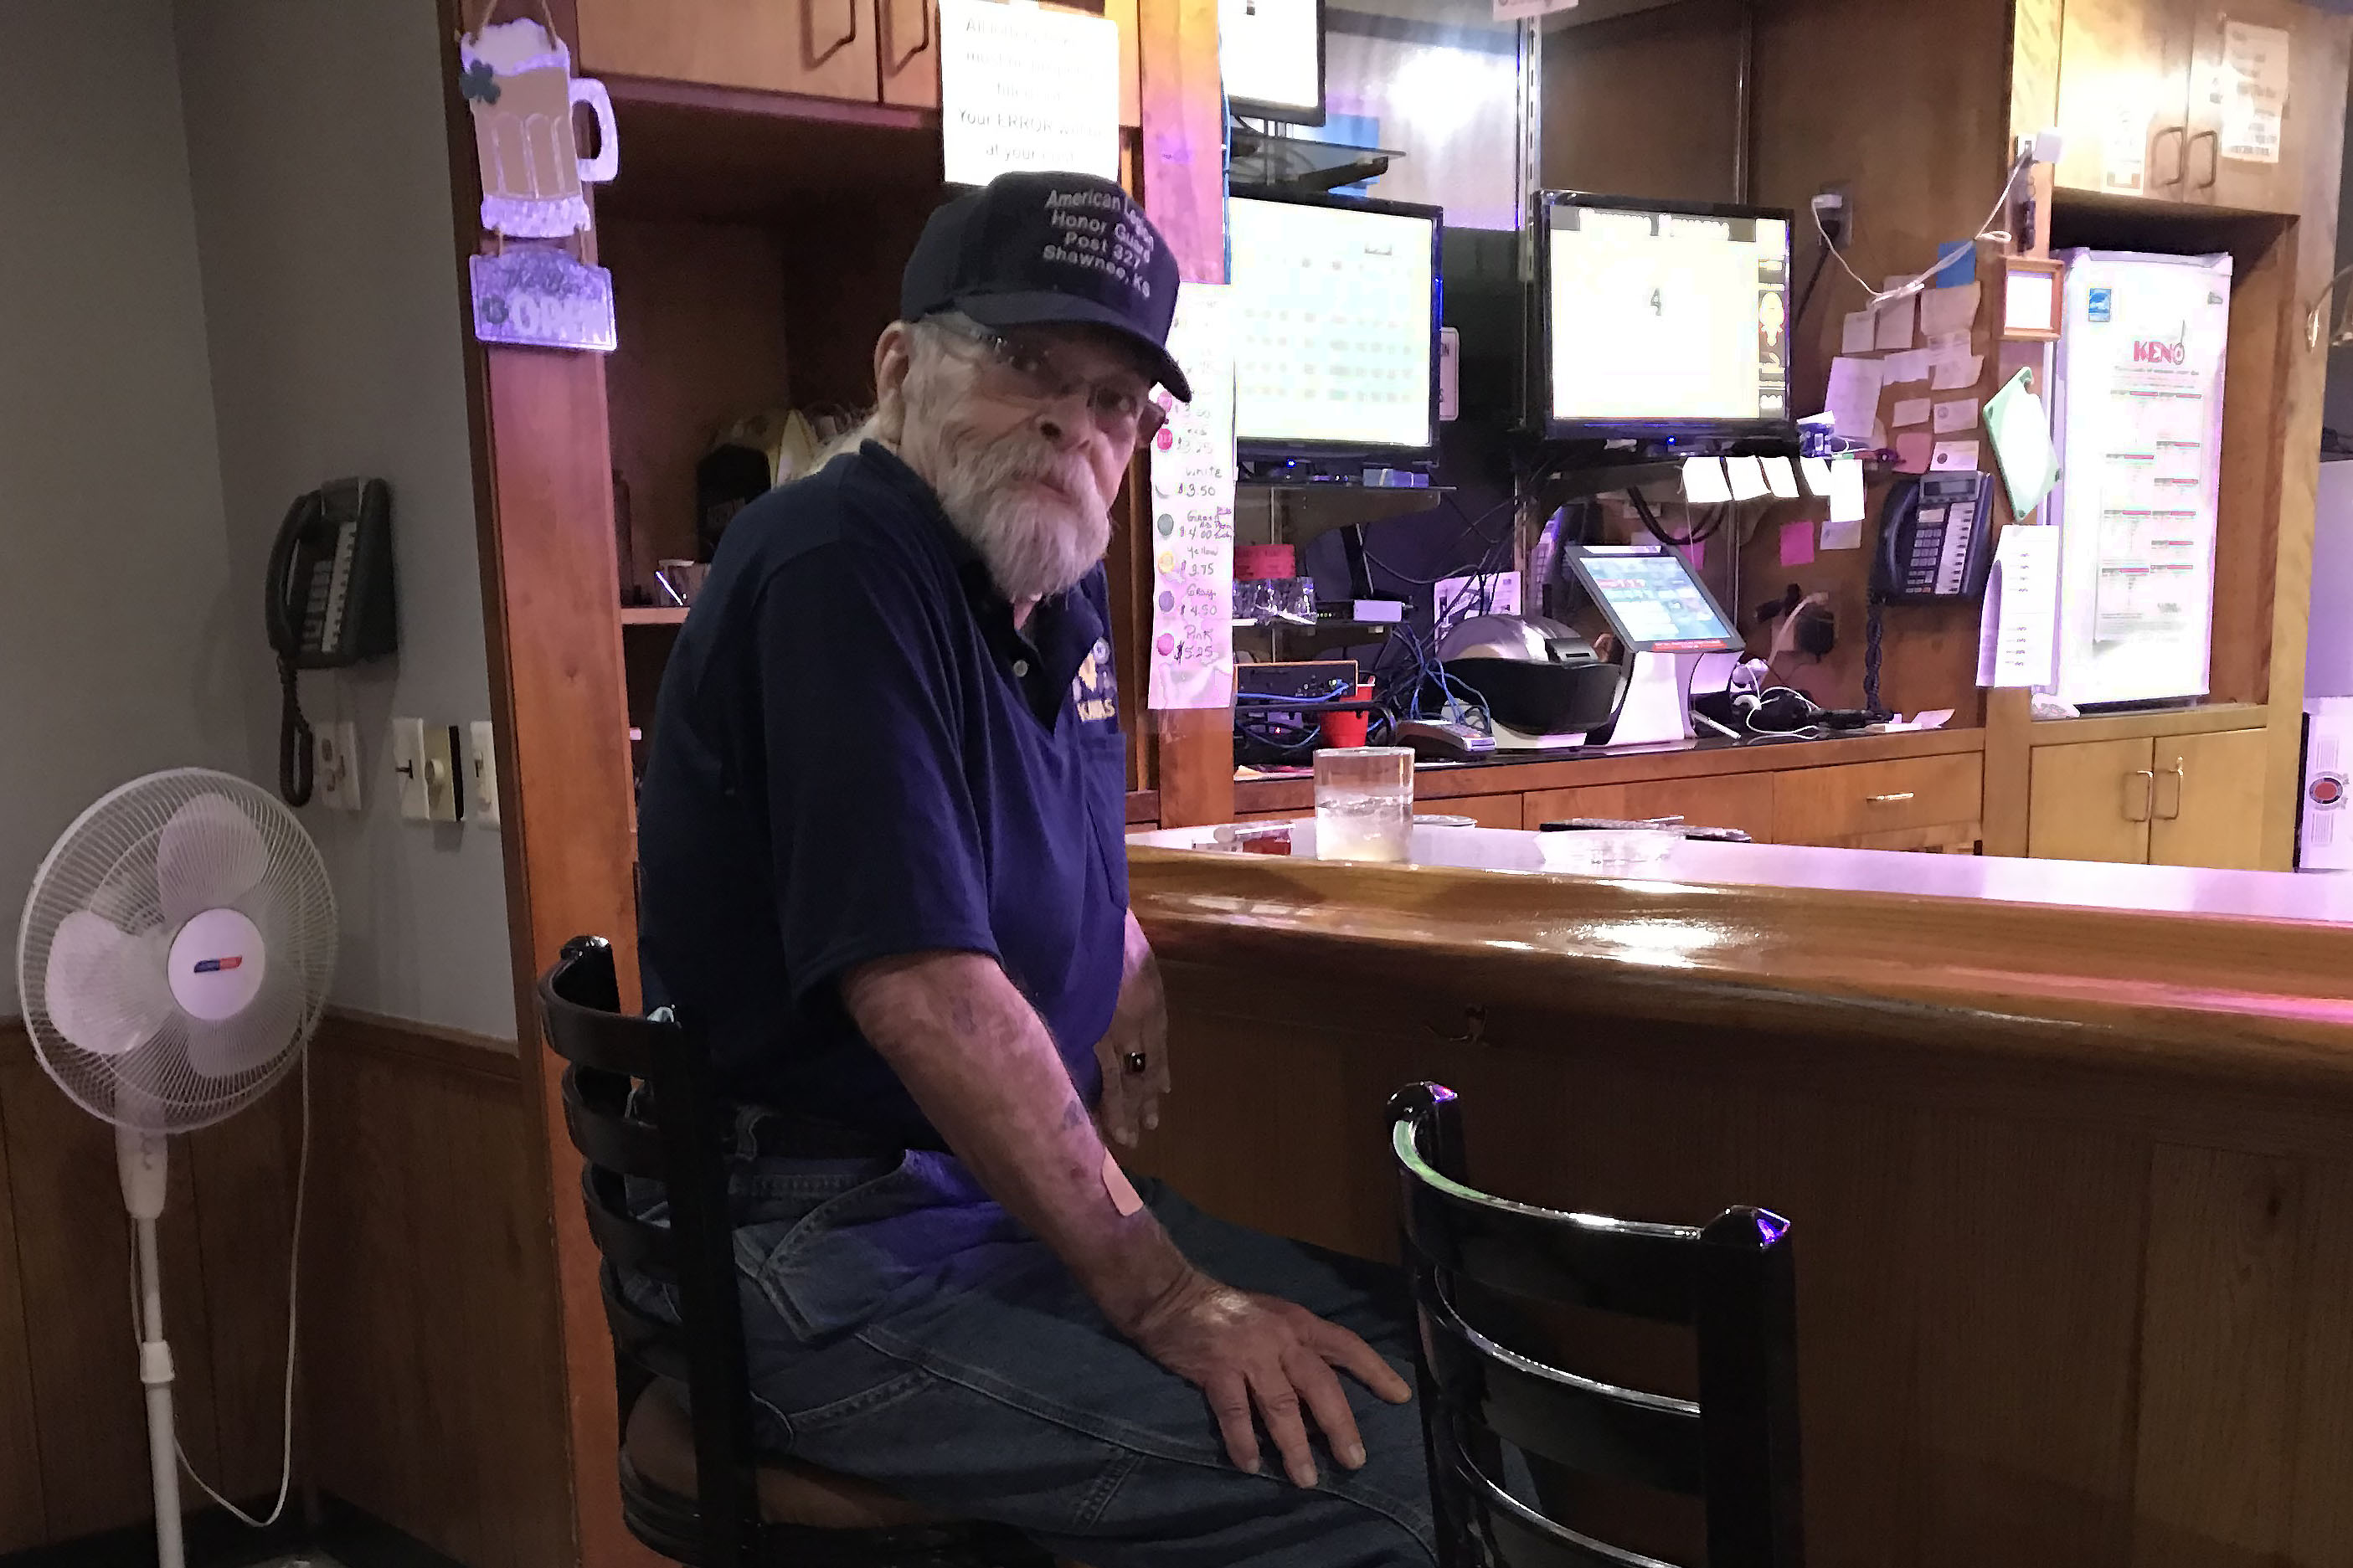 Caption: Richard Sobek, the Commander of American Legion Post 327 in Shawnee, Kansas, sits at the post's basement bar. The post is struggling to recover financially after being closed several months during the pandemic., Credit: Anne Kniggendorf / American Homefront